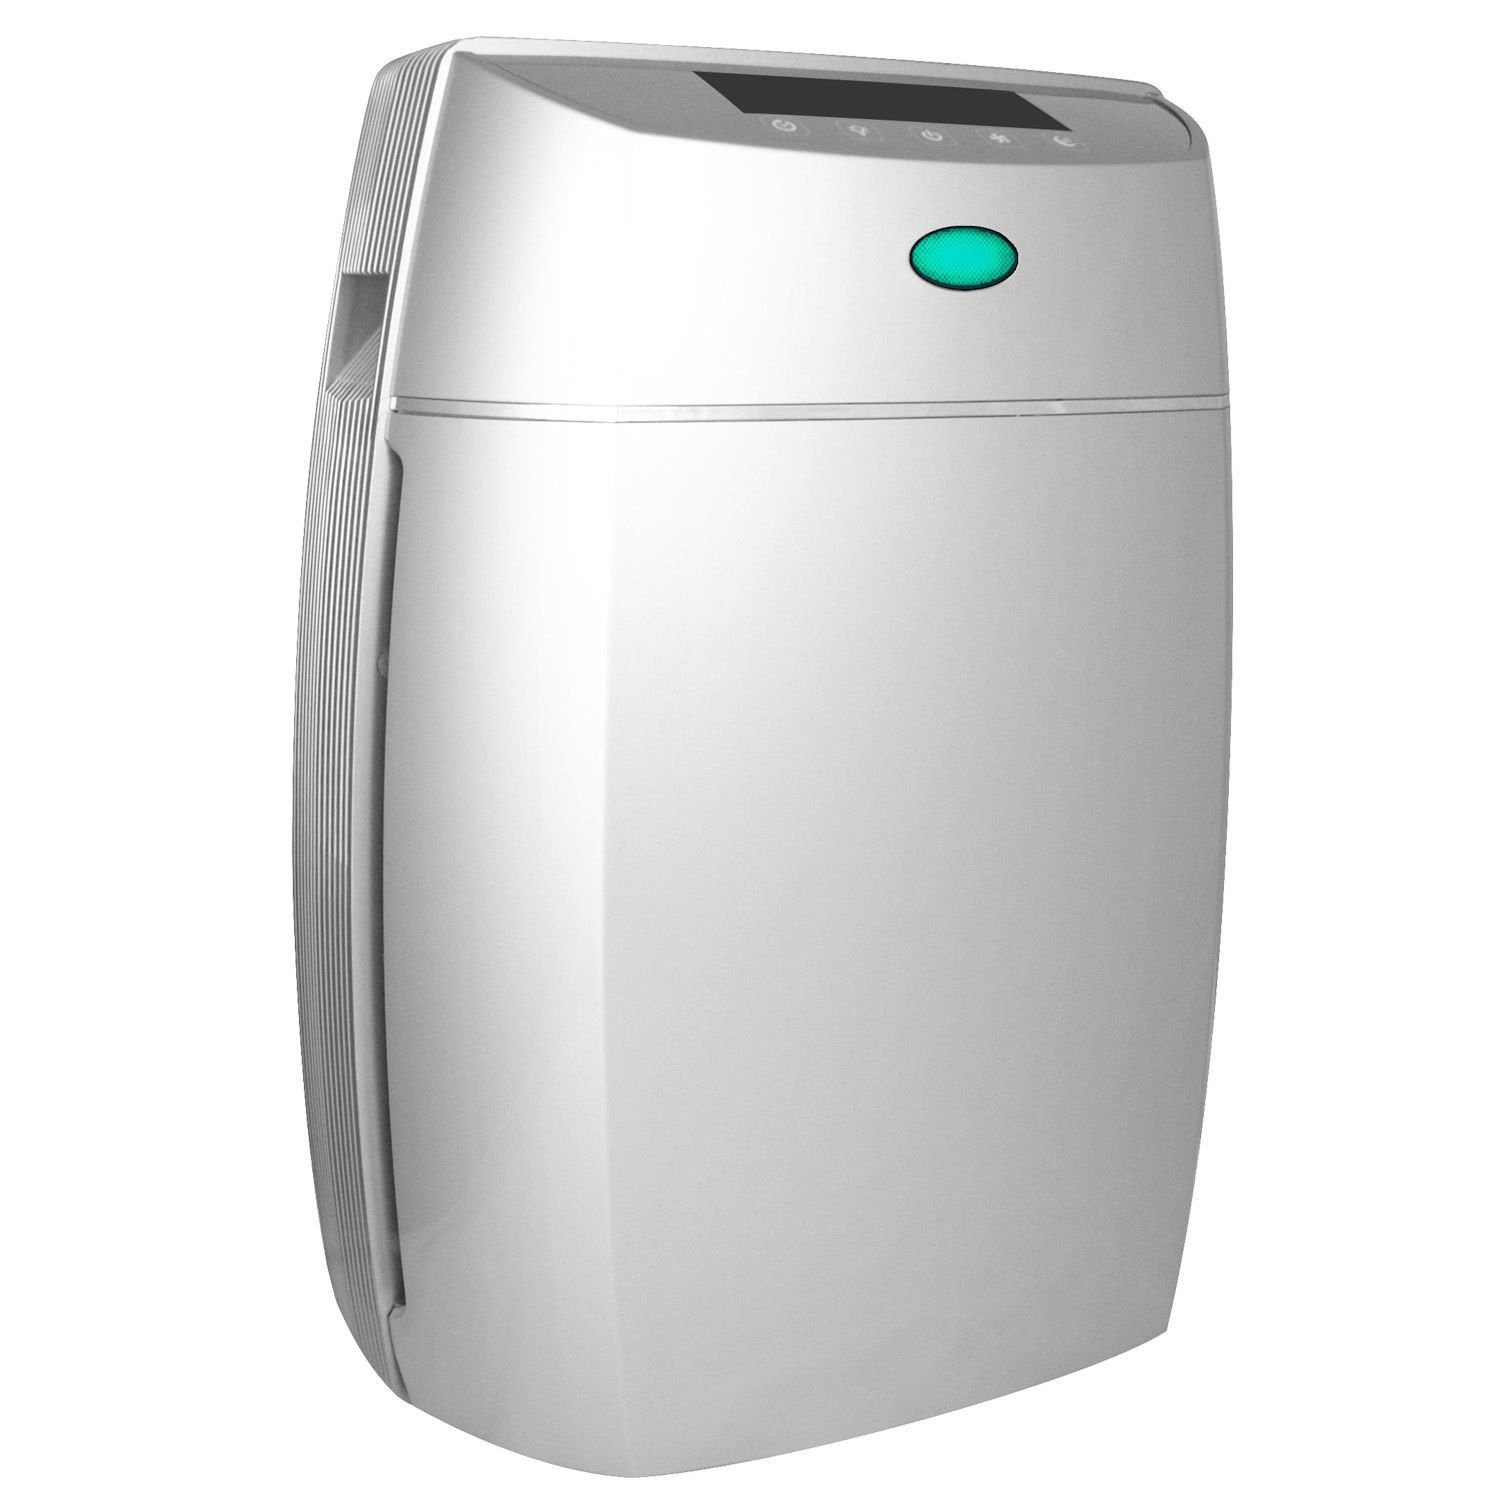 Advanced Pure Air Newport 'Ultra' Air Purifier   On-Going Air Quality Watch, Maintains Hygienic & Allergy-Free Environment, Removes 99.97% Dust, Noise Free, Protection From Pet's Mold & Danger